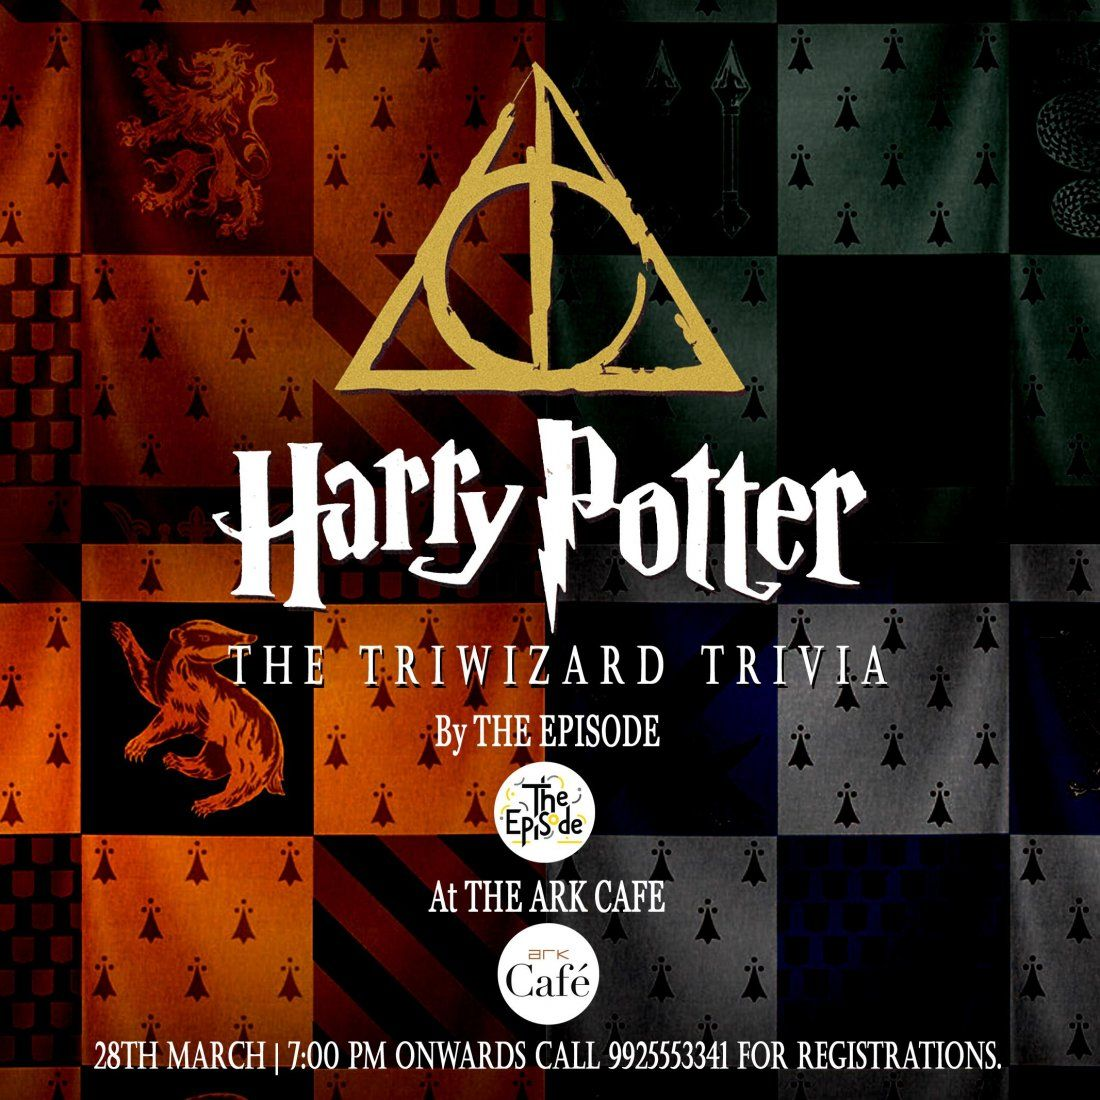 Harry Potter - The Triwizard Trivia